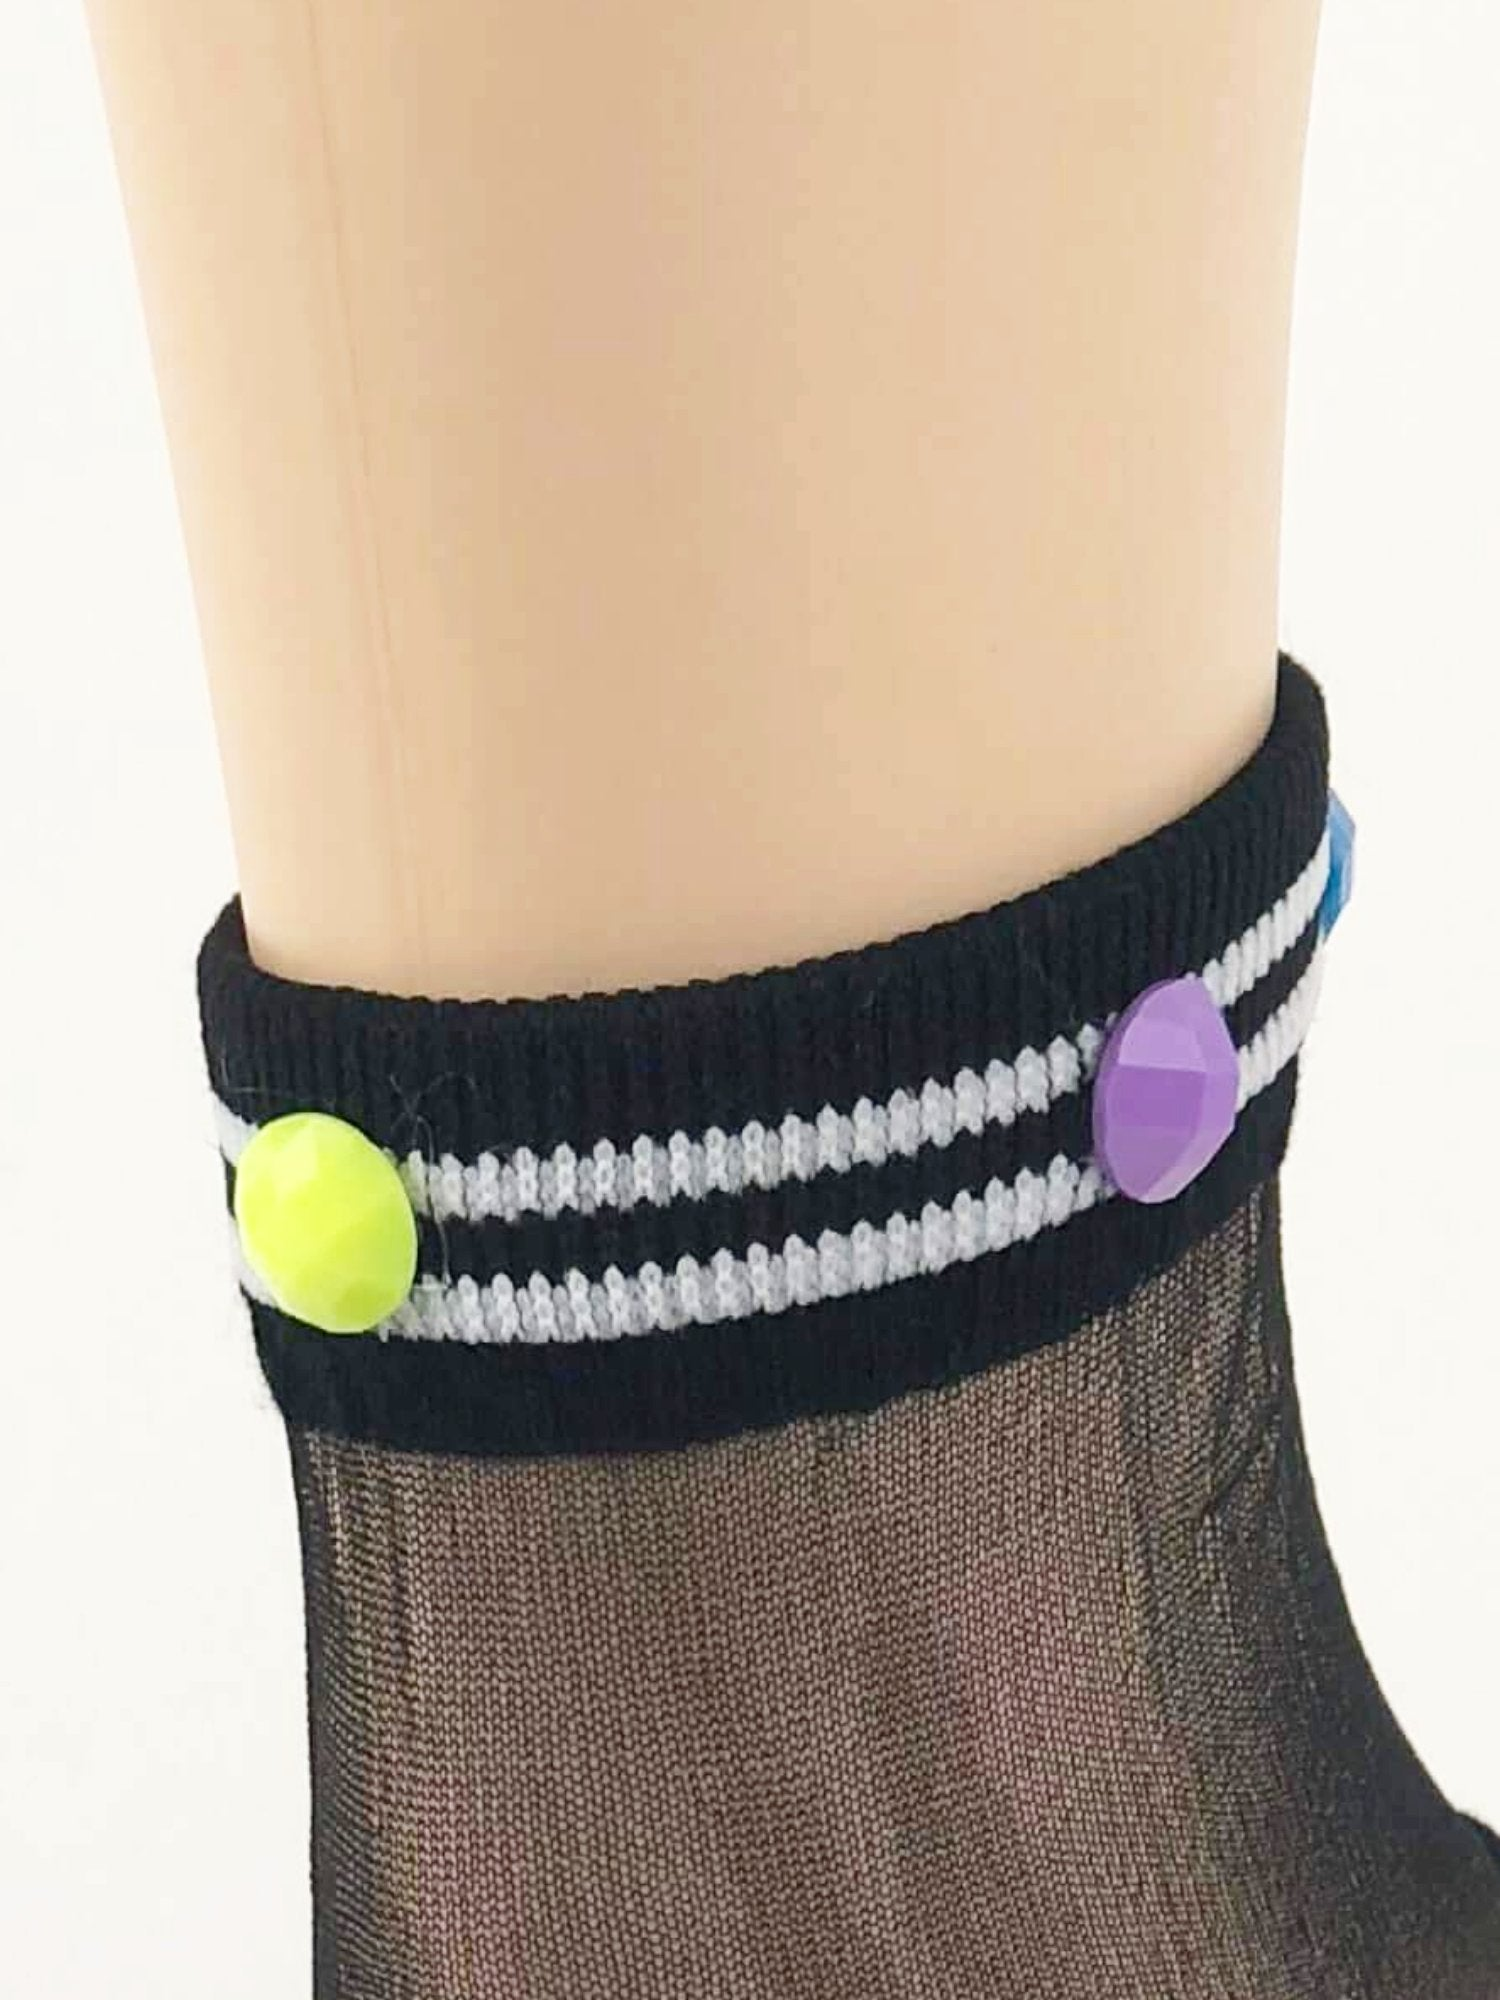 Simple Black Stripped Sheer Socks - Global Trendz Fashion®